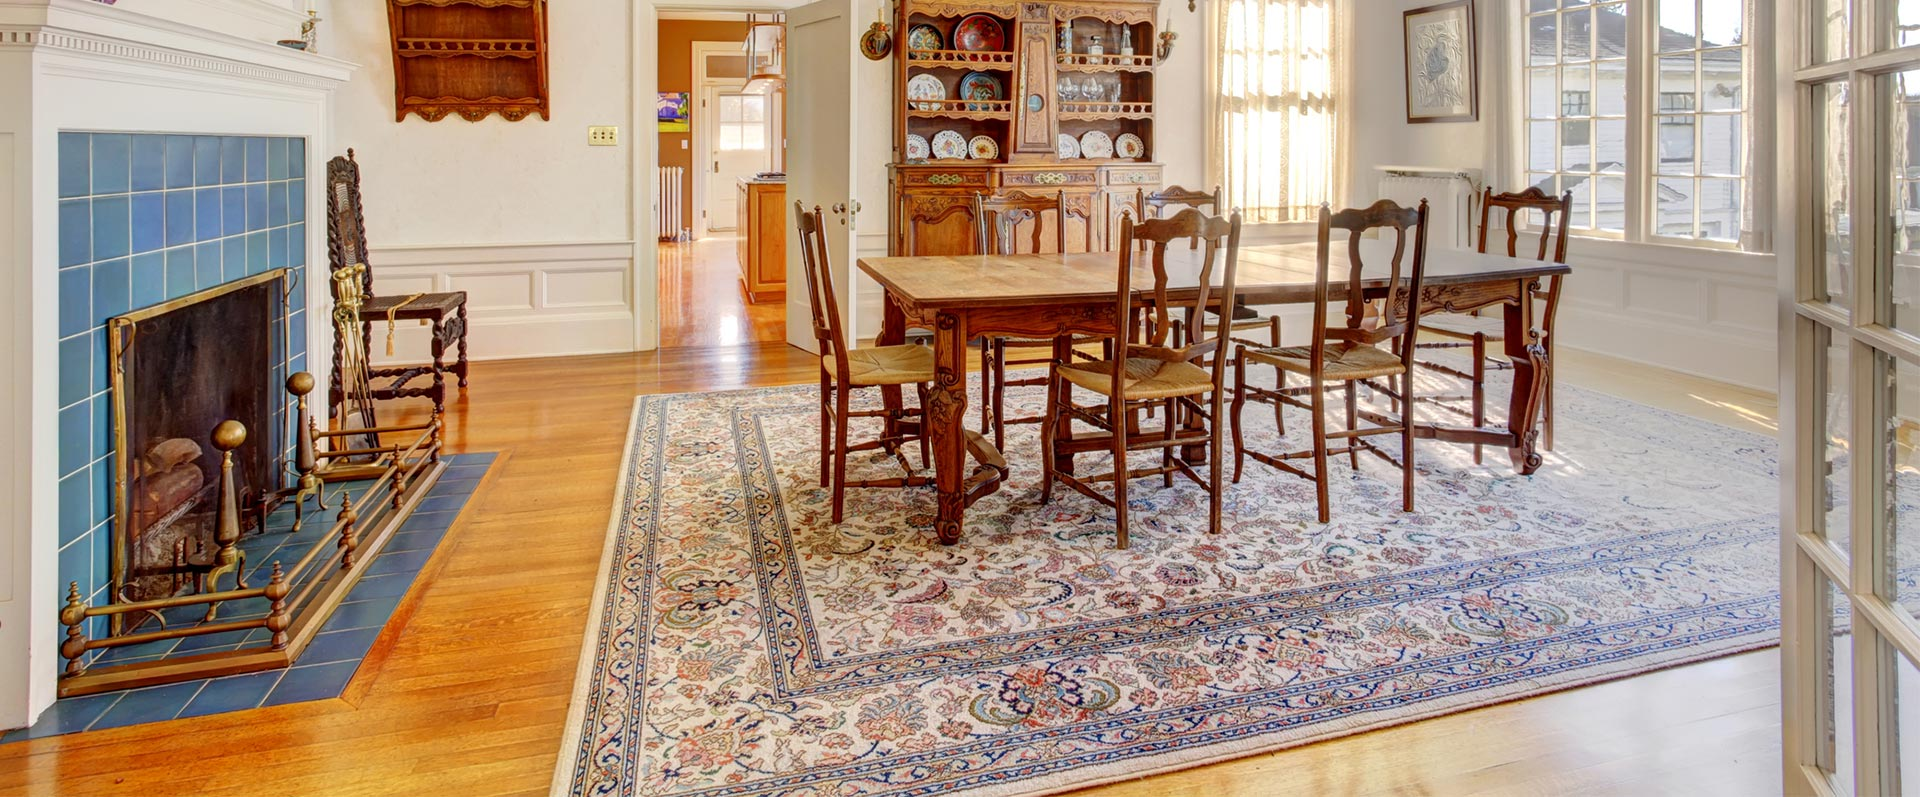 Topsfield Rug Cleaners Proodian Rug Cleaners Inc